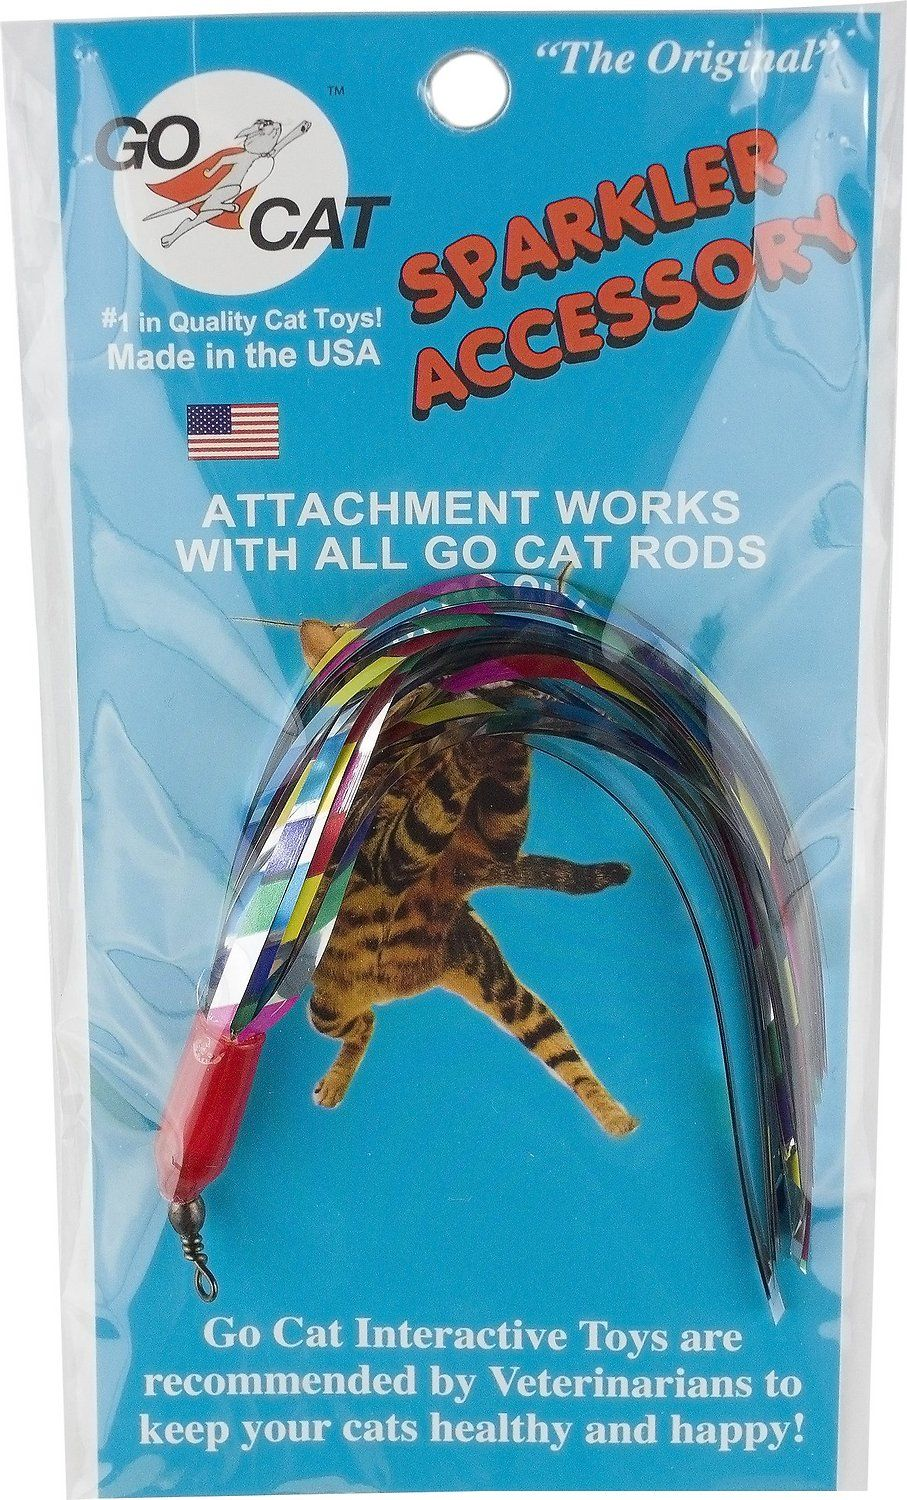 Keep The Fun Going With The Go Cat Da Bird Sparkler Teaser Wand Replacement Cat Toy Because Let S Face It Your Cat Is Going To Cat Toys Quality Cat Sparklers